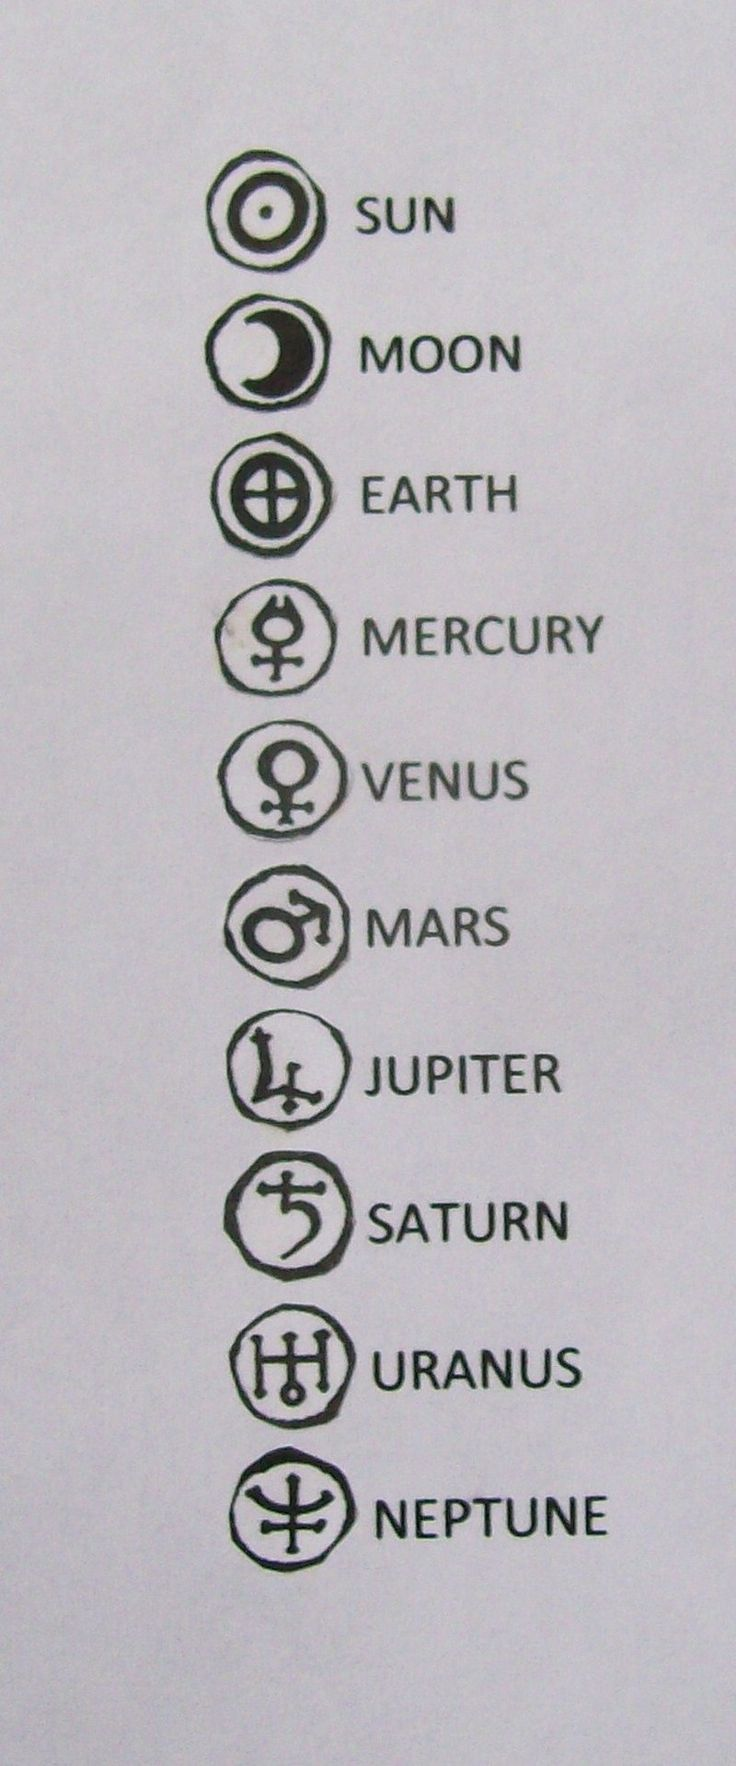 The signs of the gods or the universe, depending on your perspective.